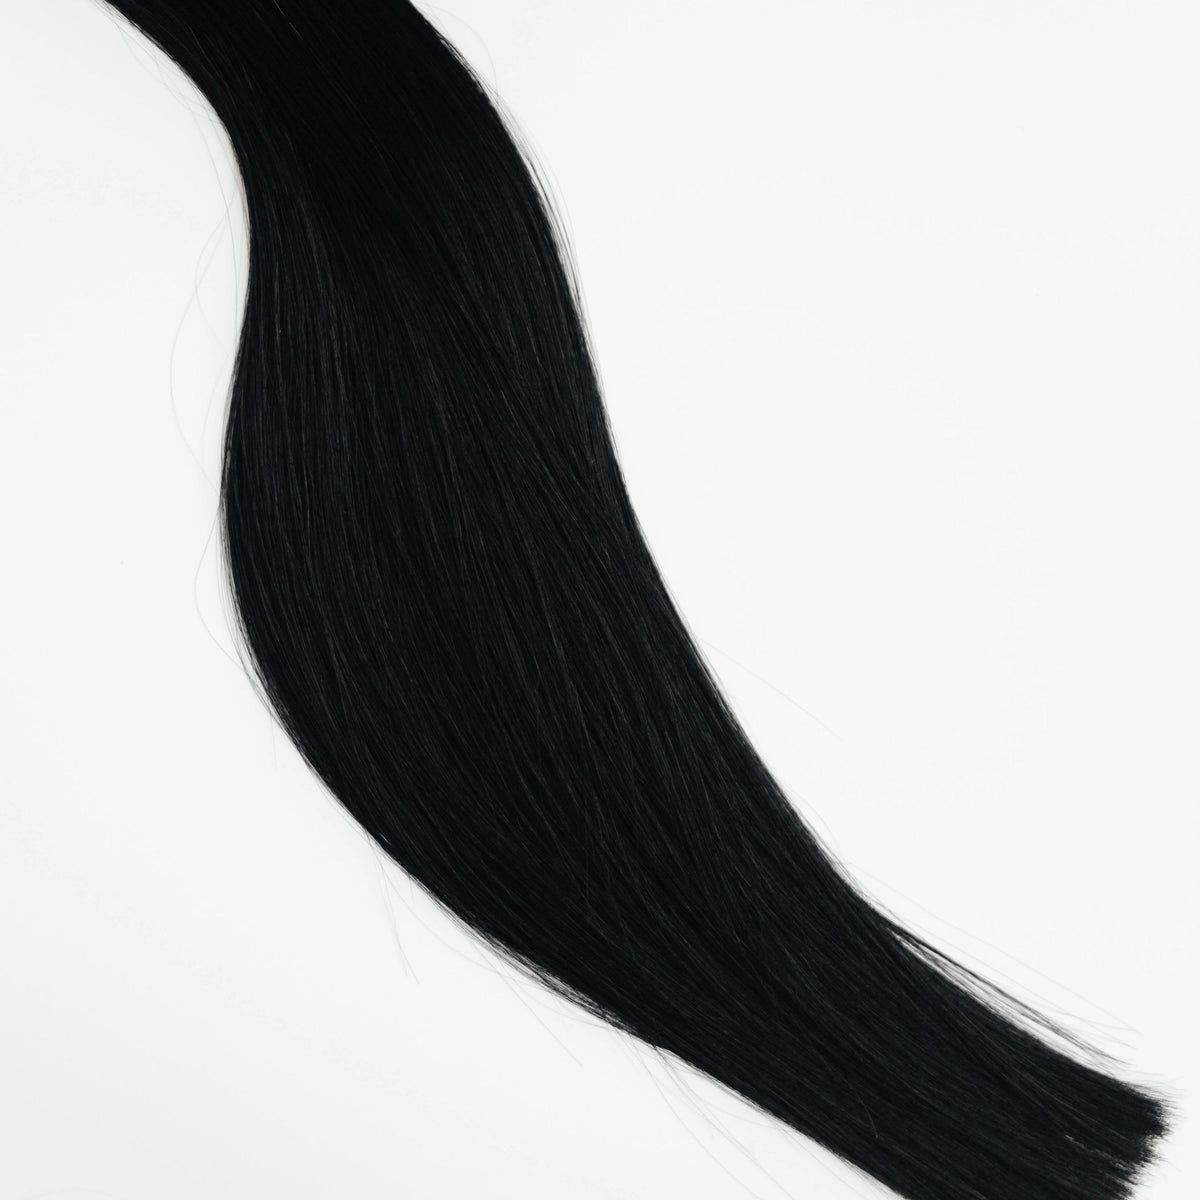 Laced Hair Clip-In Extensions #1 (Black Noir)